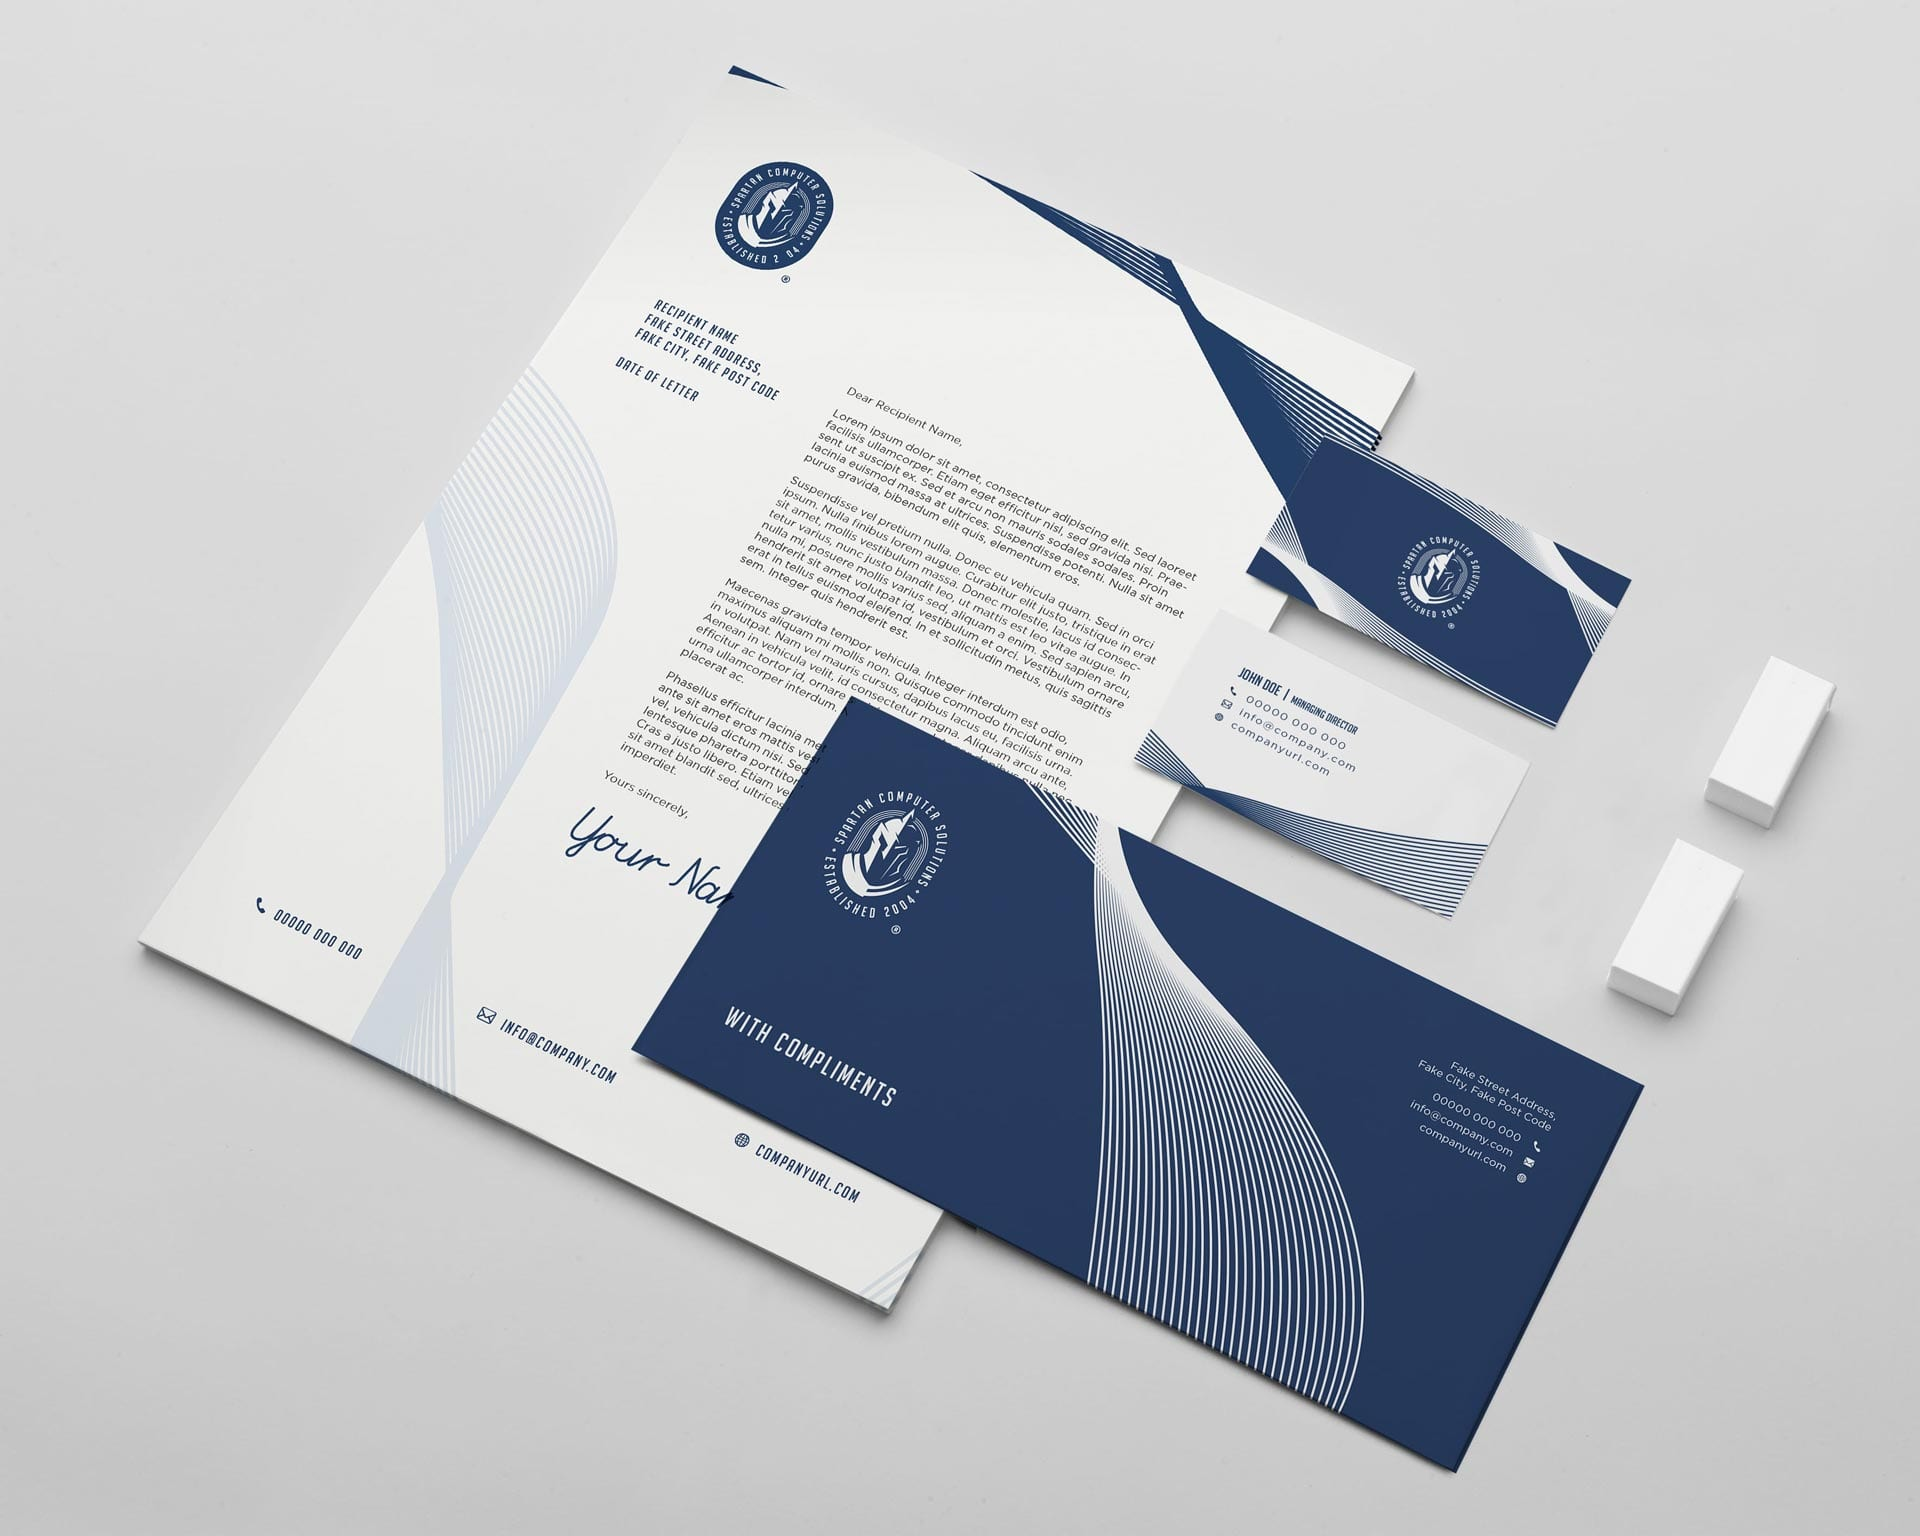 Spartan Computer Solutions Staionery Designs - Invoice, Letterhead, Compliments slip, business cards front and back